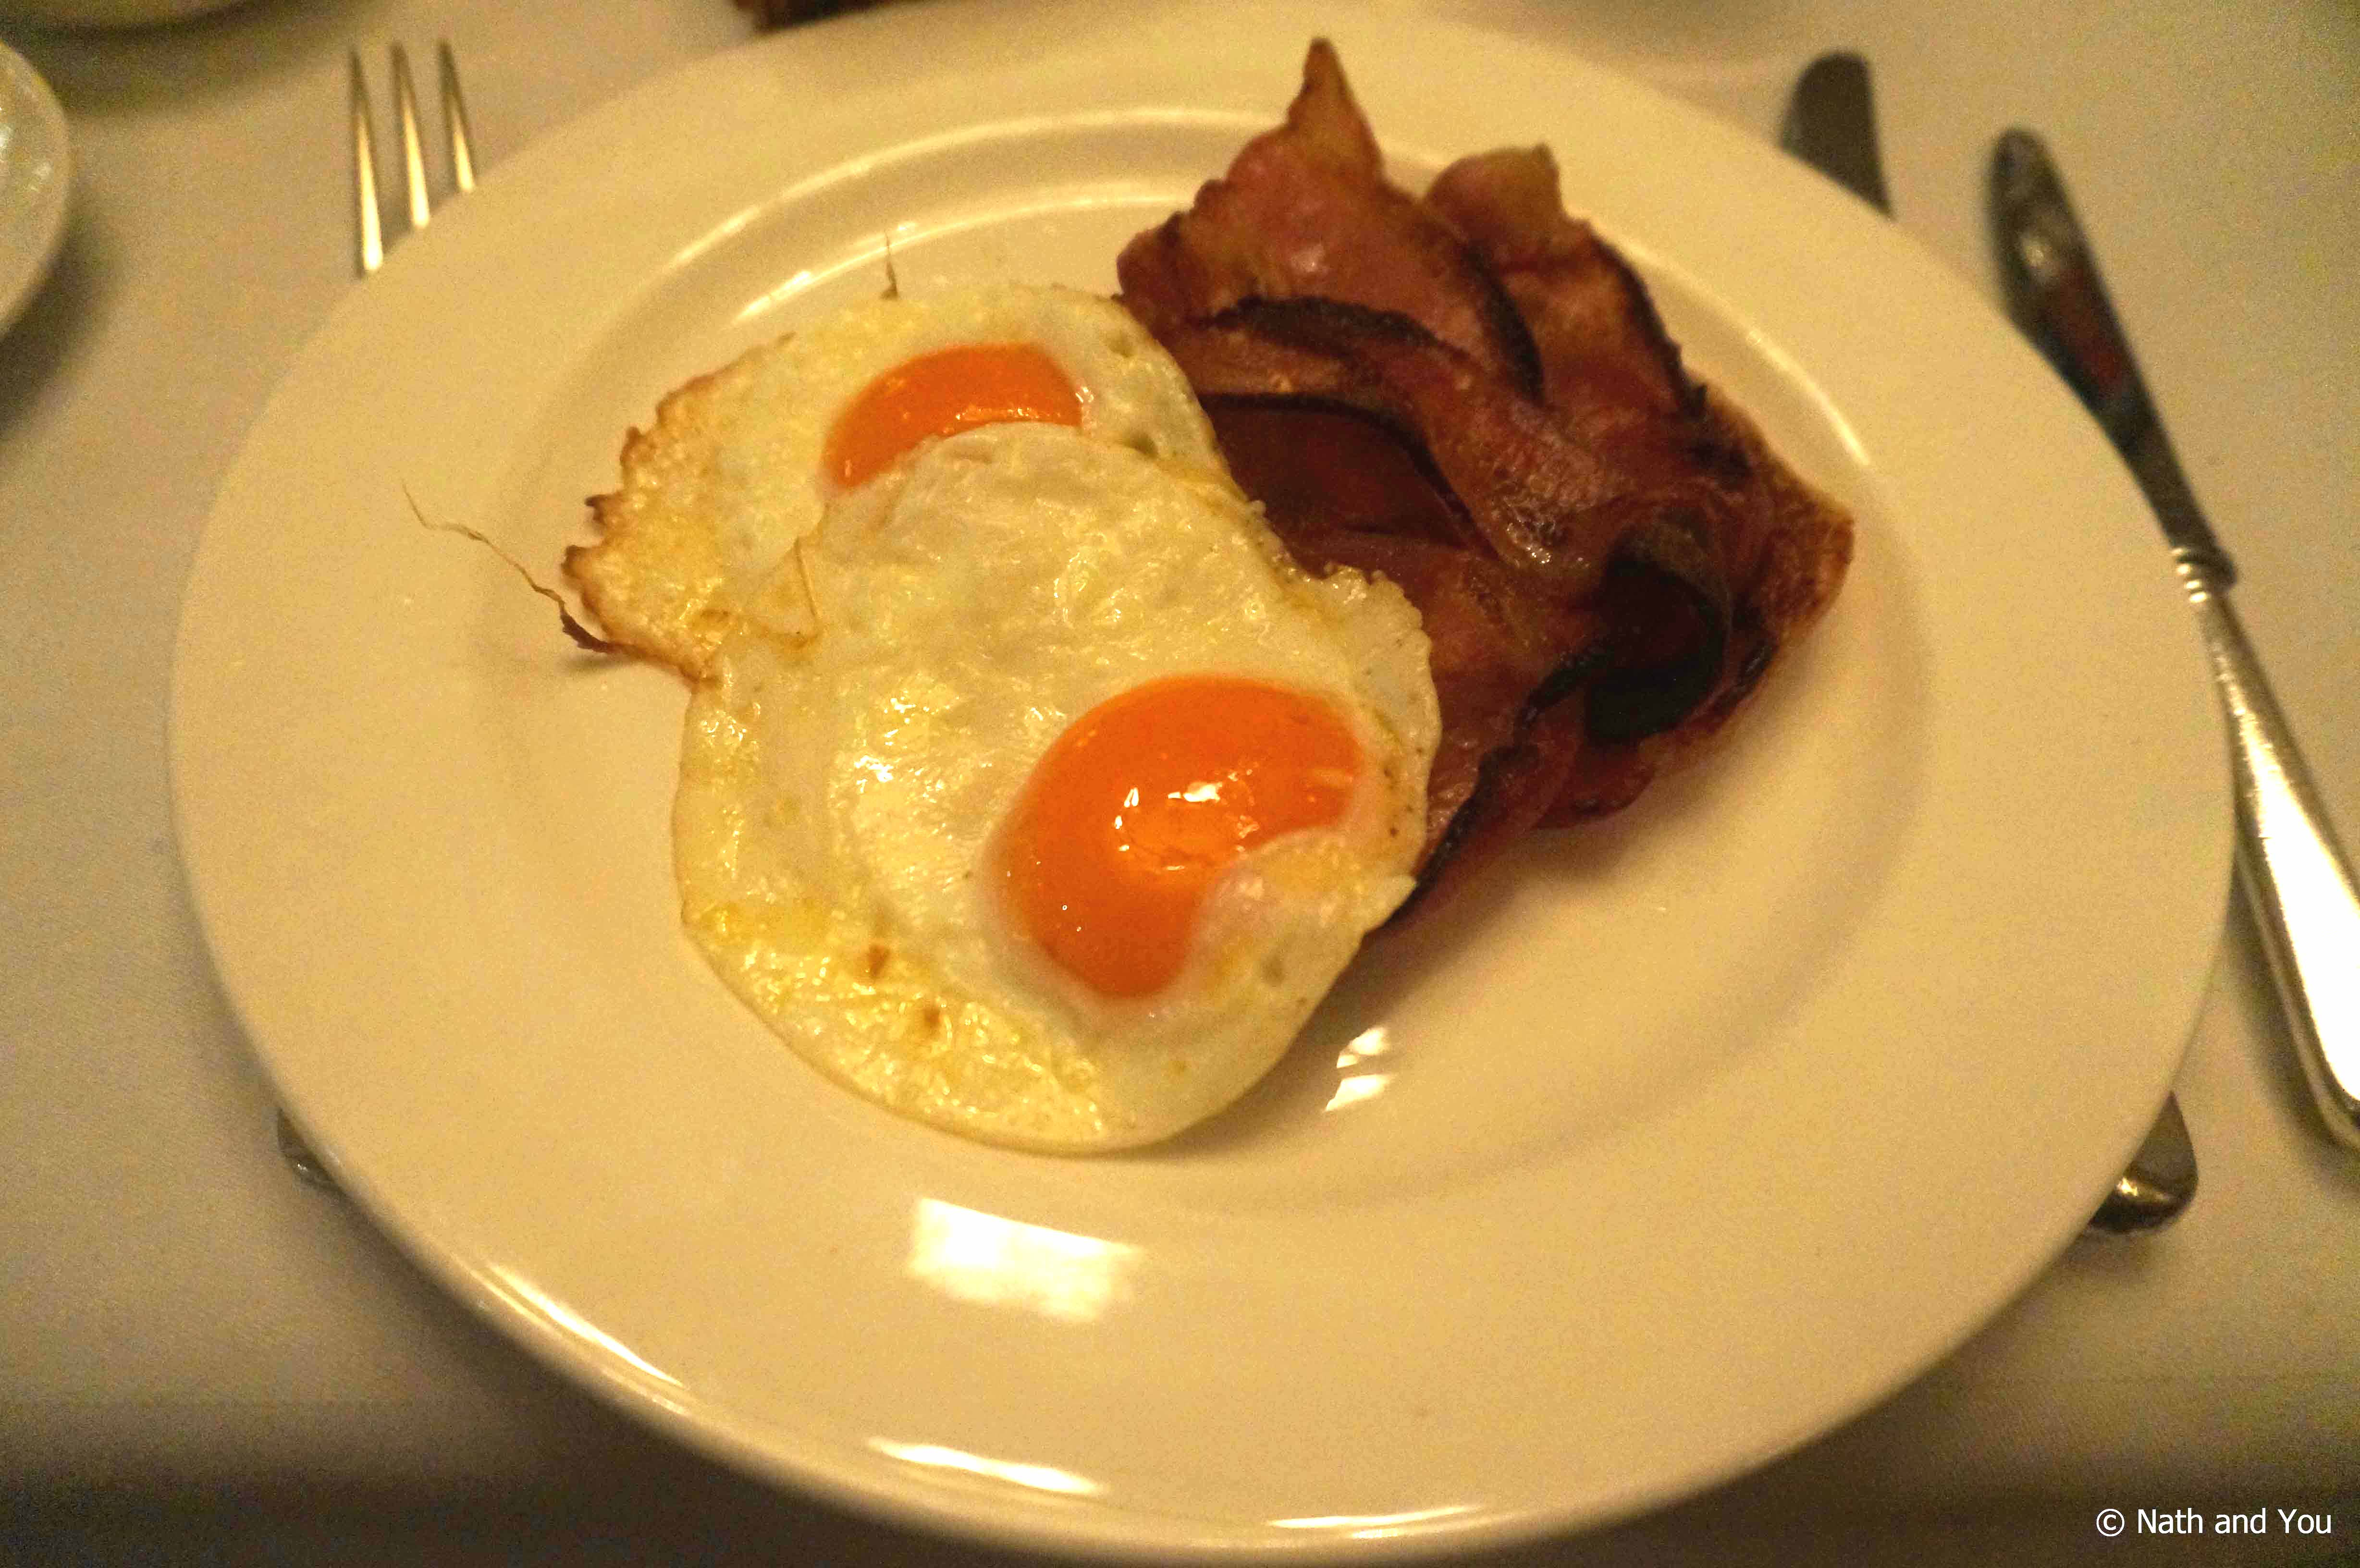 Breakfast-soho-Dean-Street-TownHouse-Weekend-Londres-Nath-and-you.